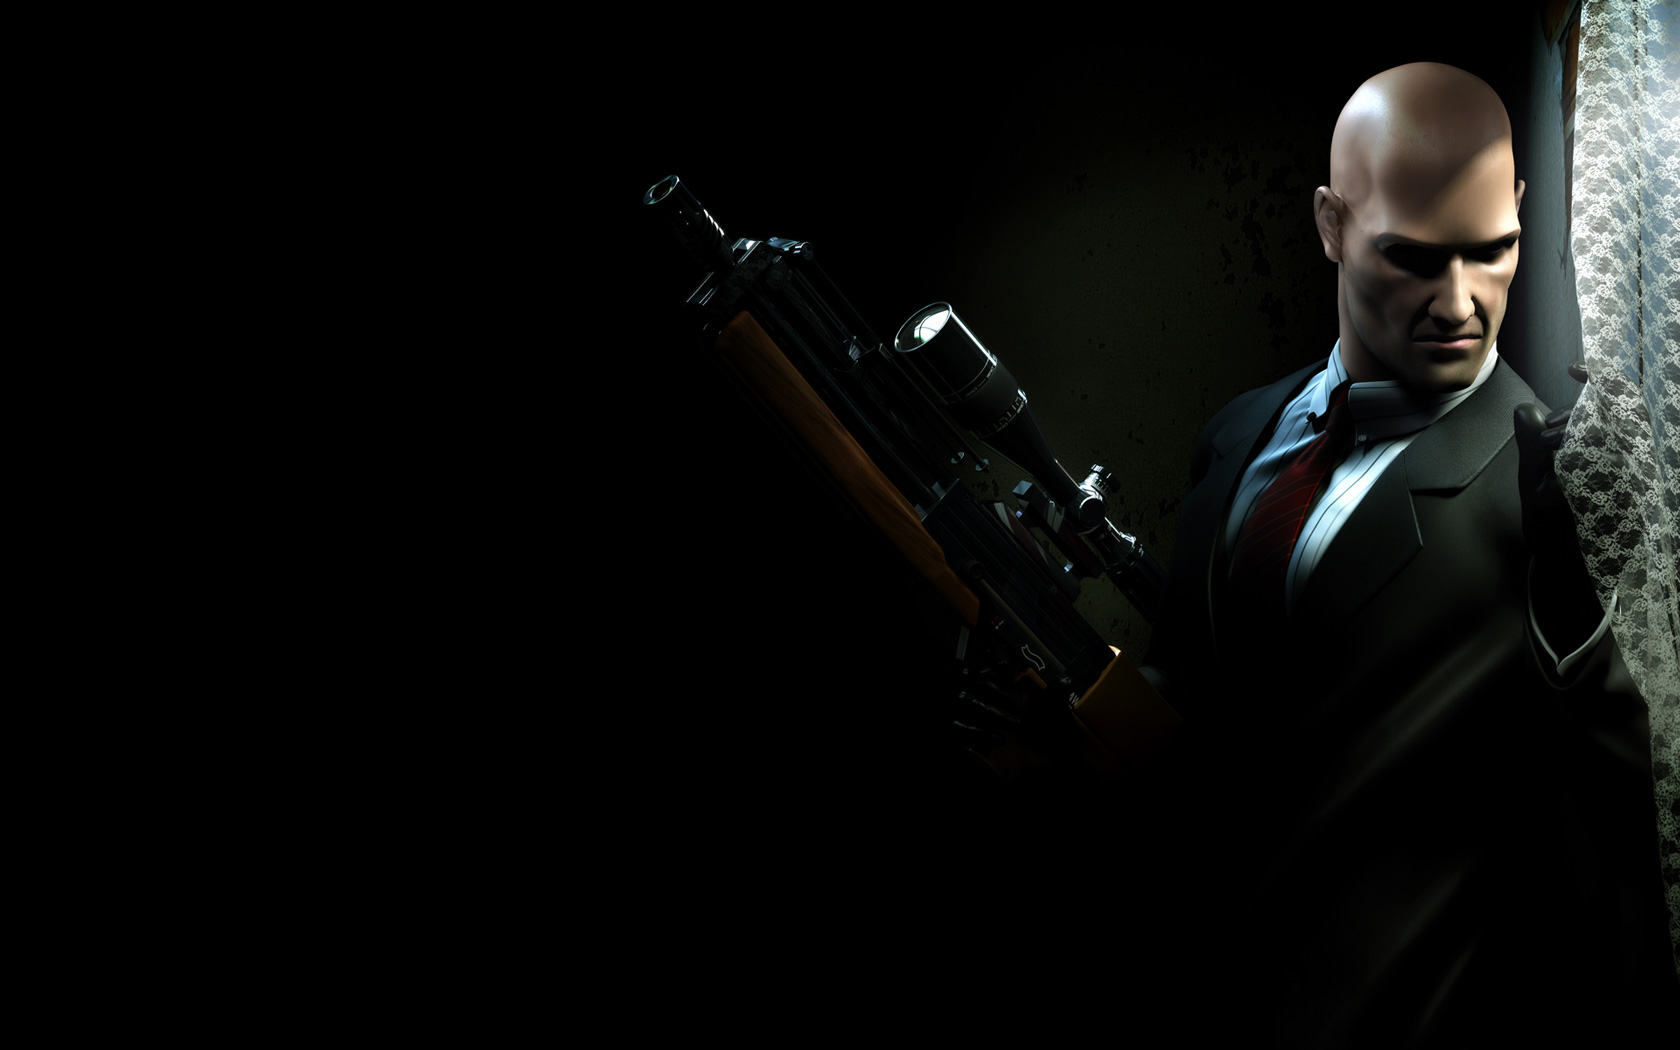 Free Hitman: Contracts Wallpaper in 1680x1050